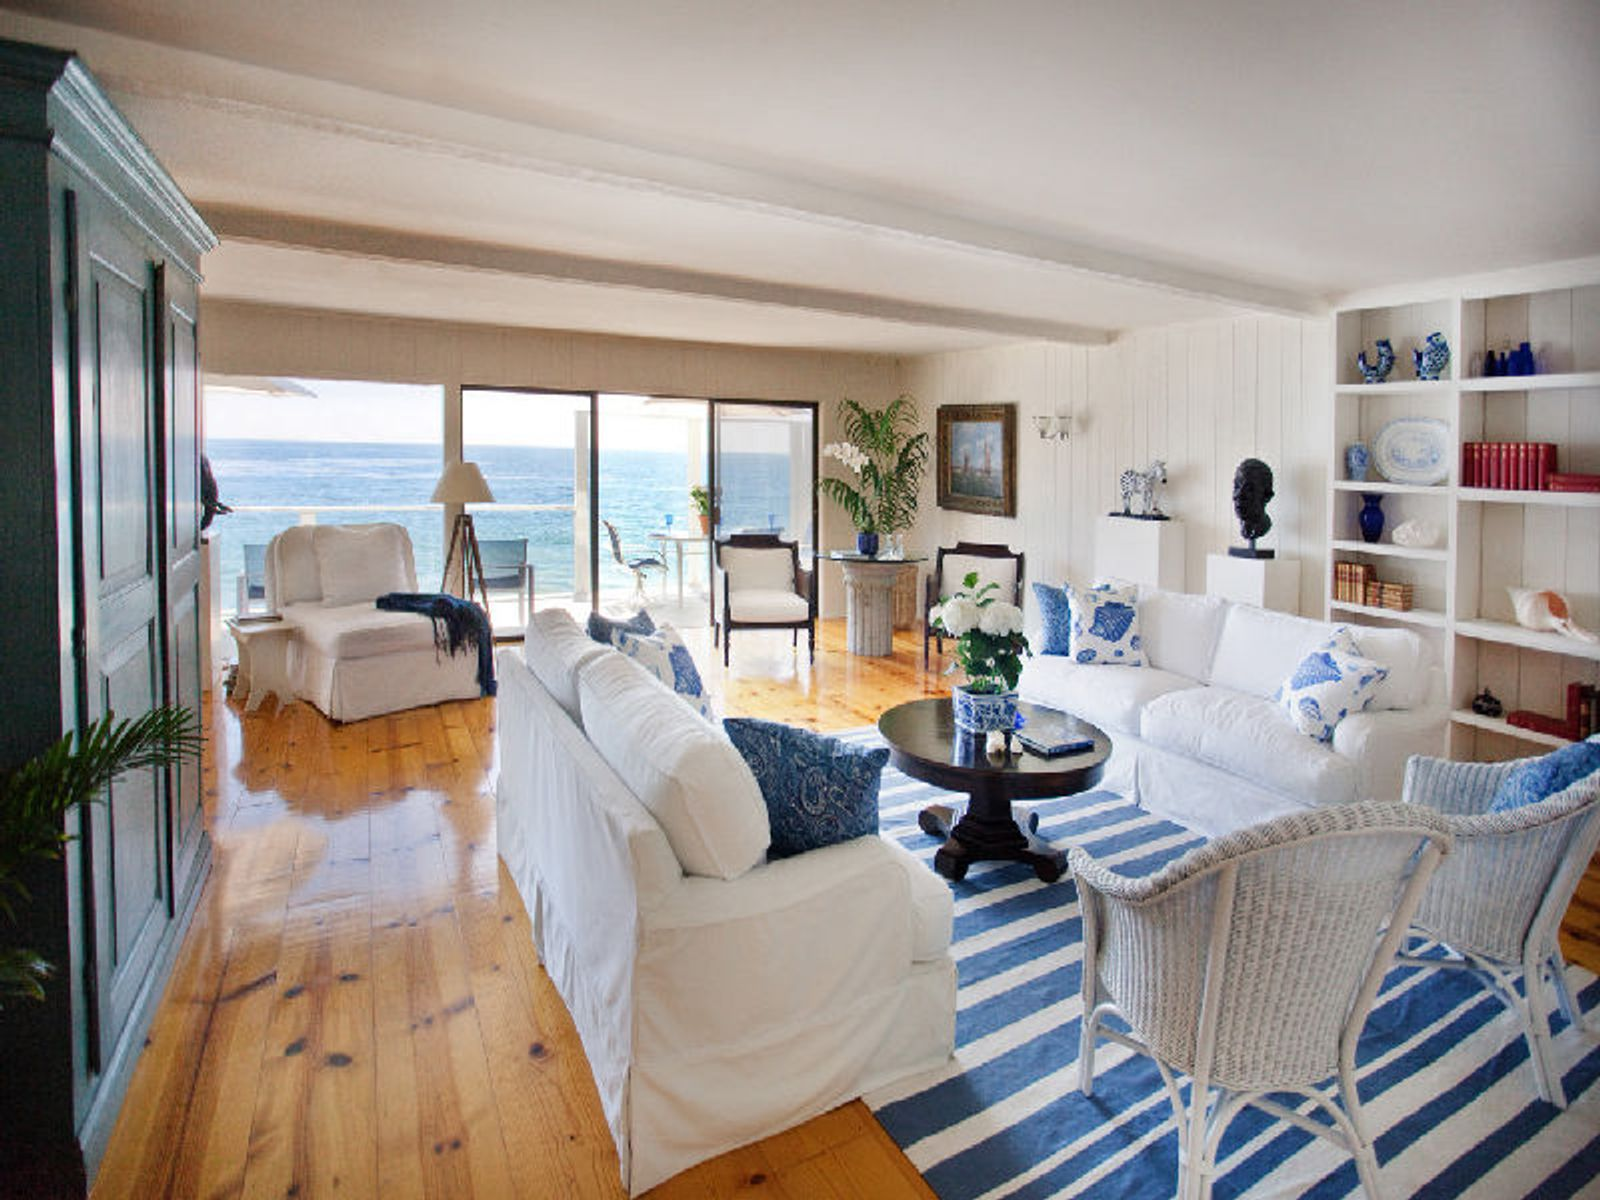 Charming Cape Cod Inspired Beach Home